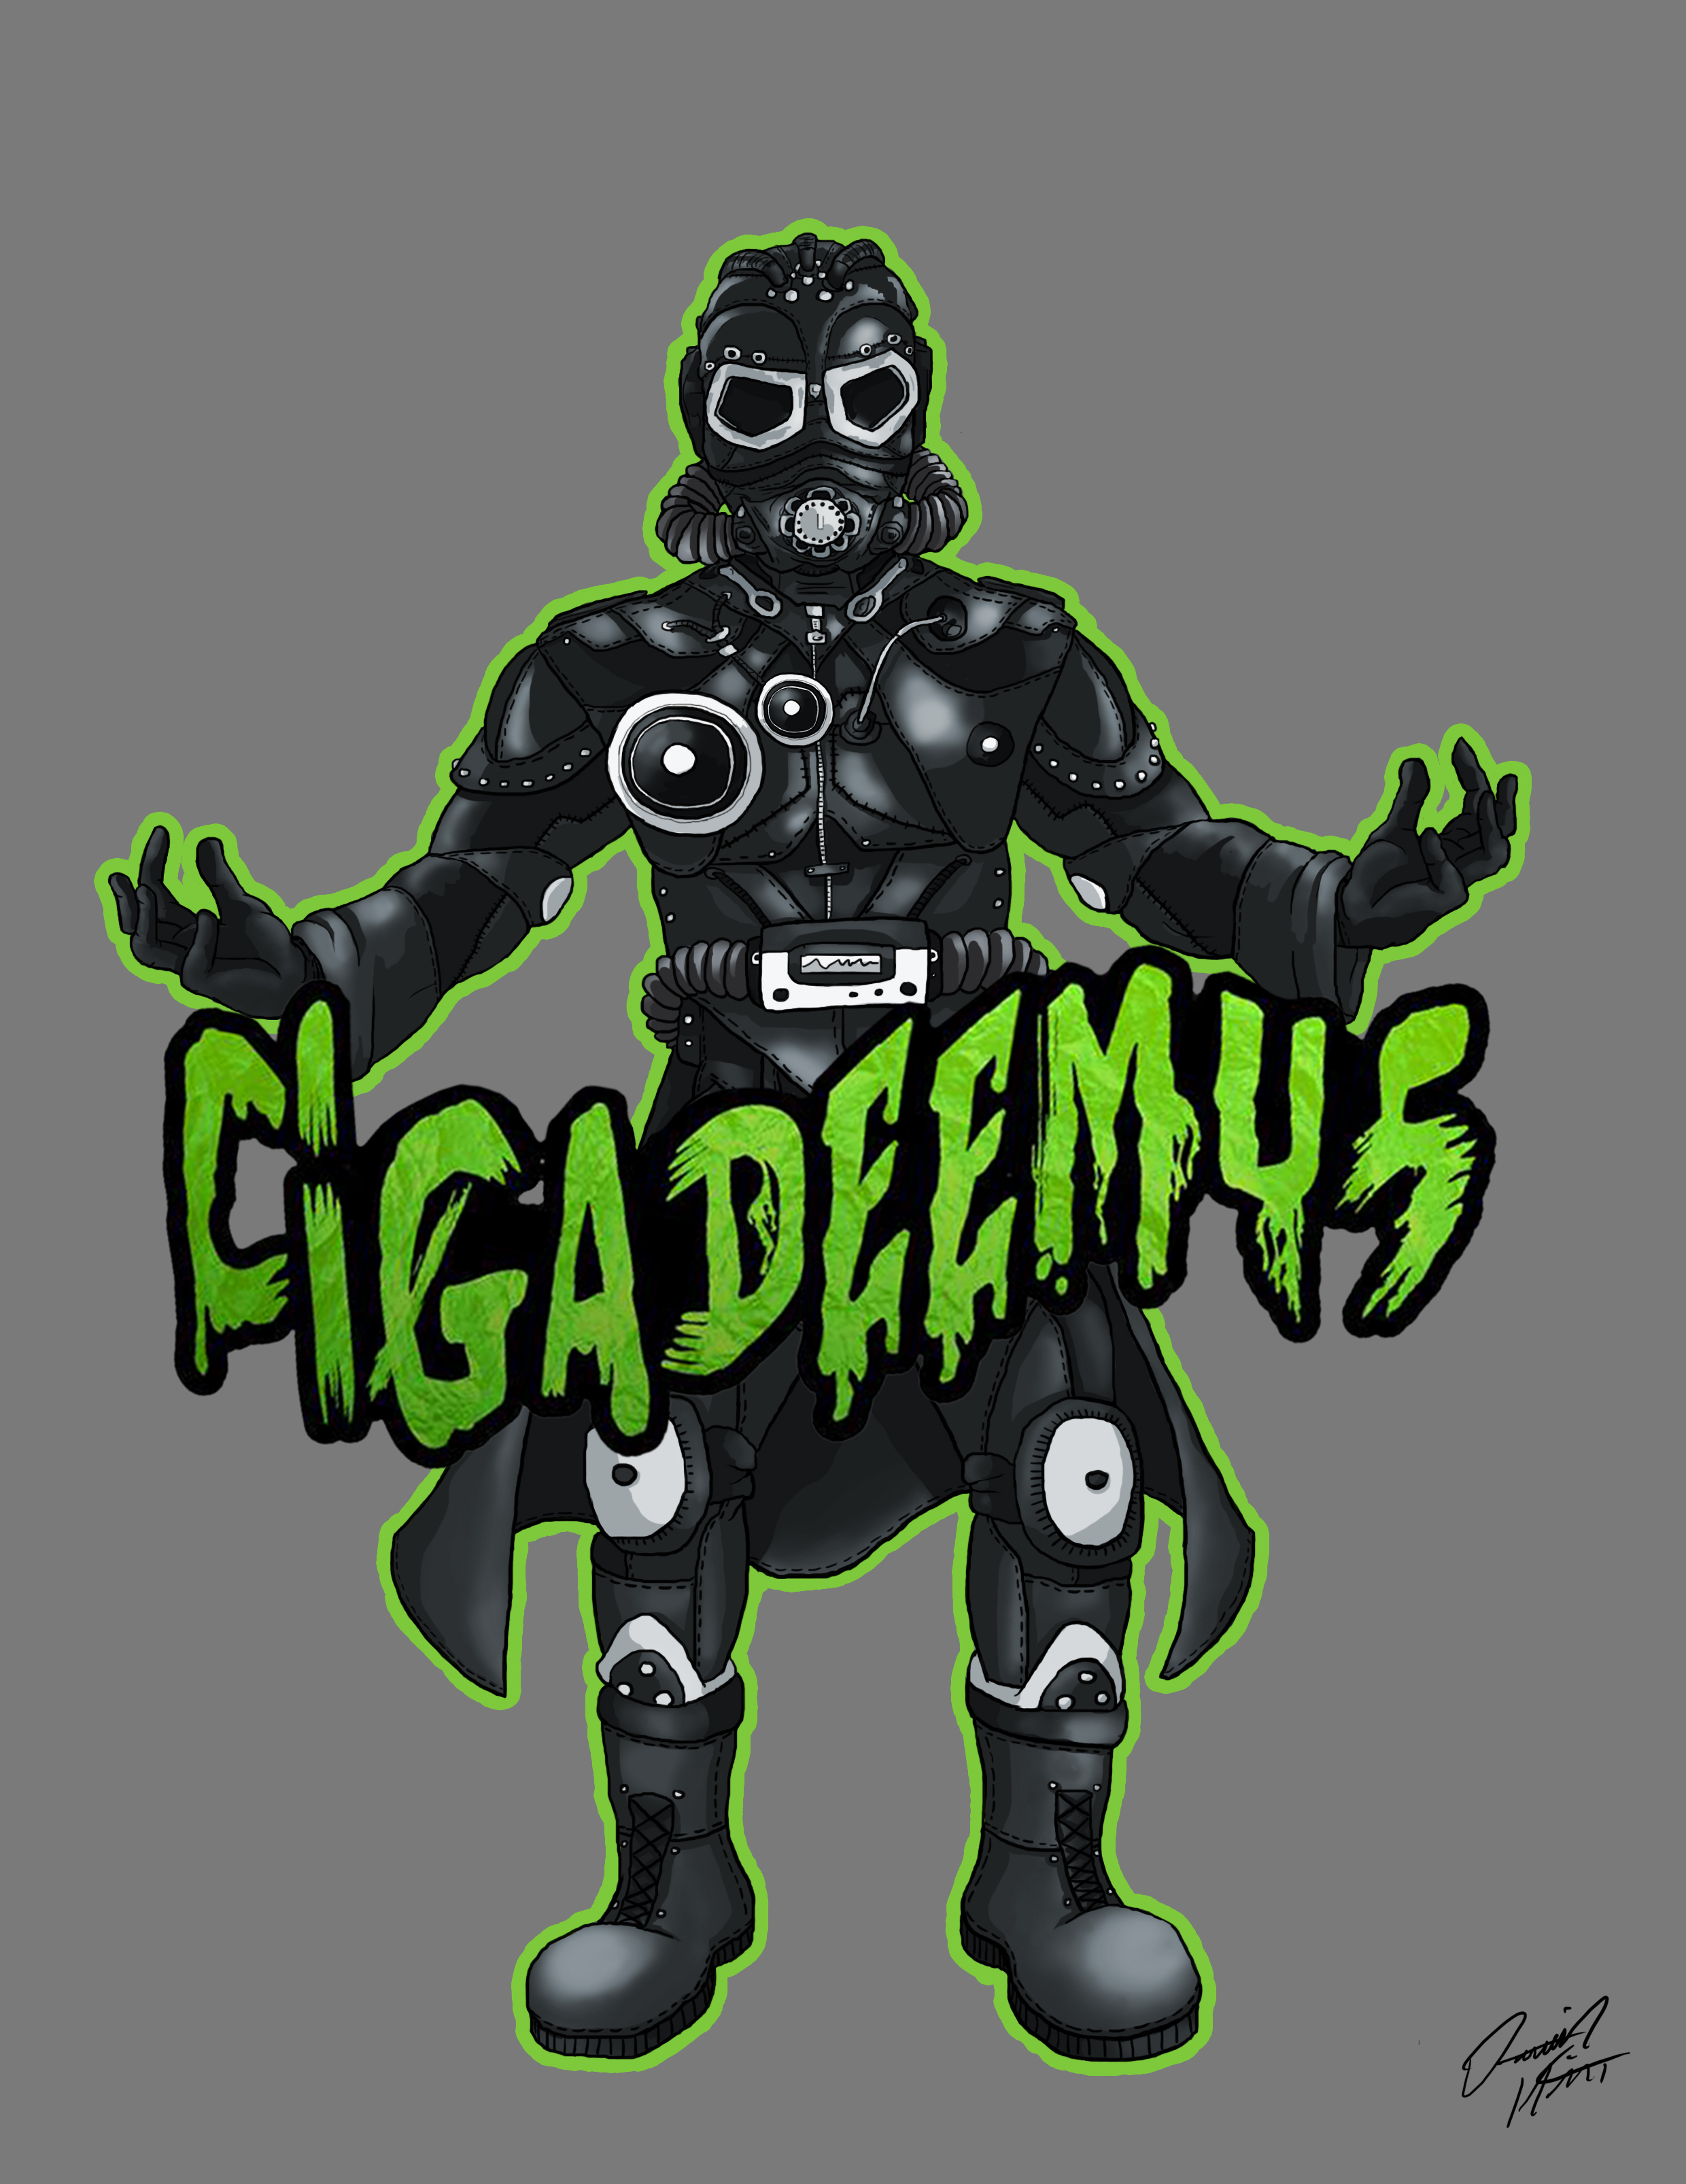 This project was a design brief to adapt the UK based Producers Cigadeemus' logo into a character. quite happy with the end result!